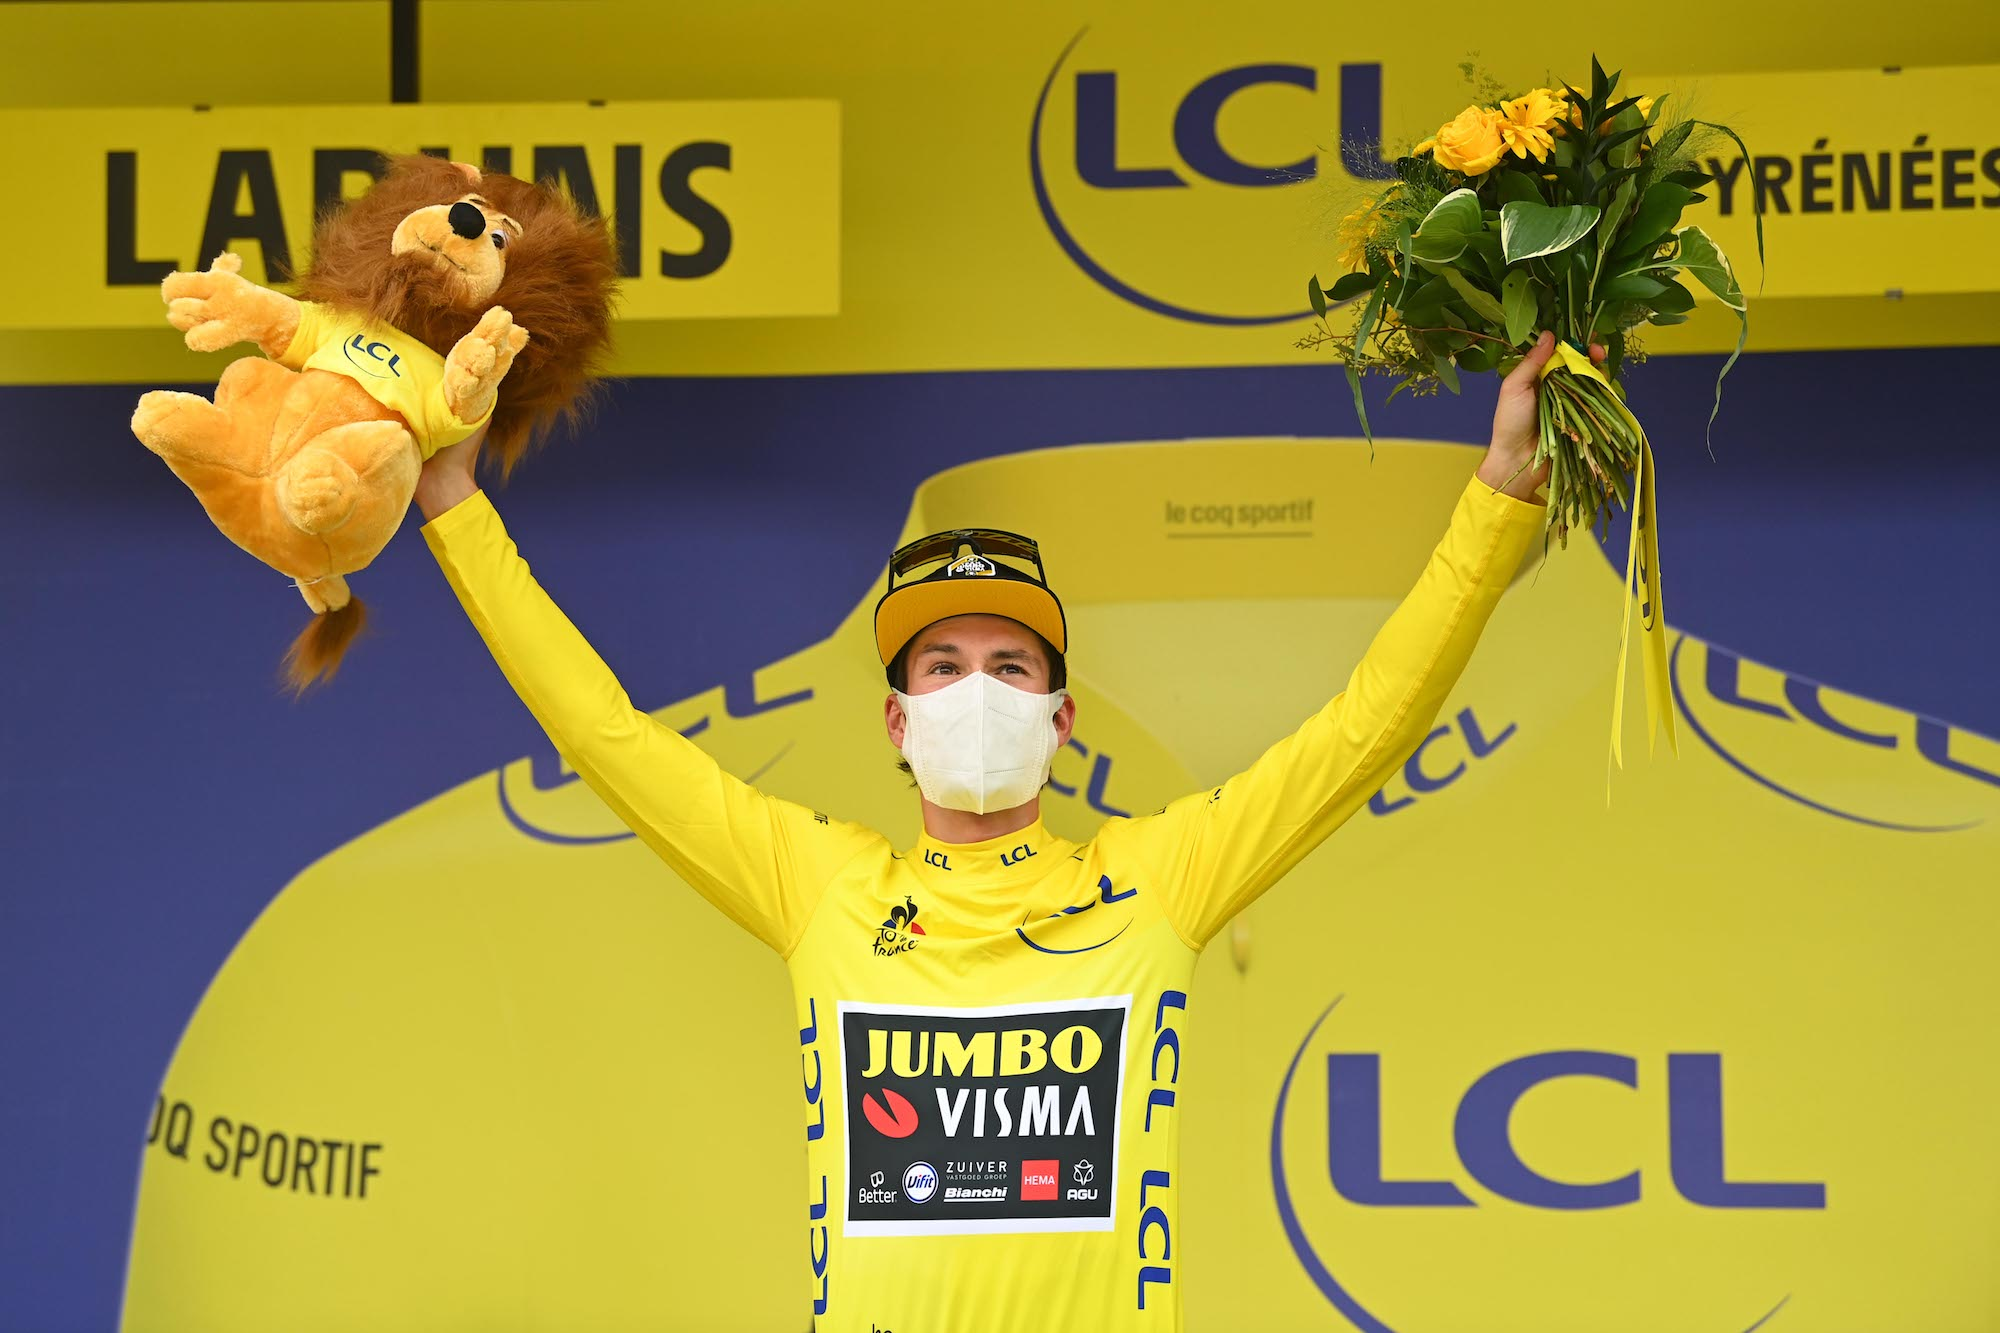 https www cyclingweekly com news racing tour de france tour de france 2020 five things to look out for during the second week 466701